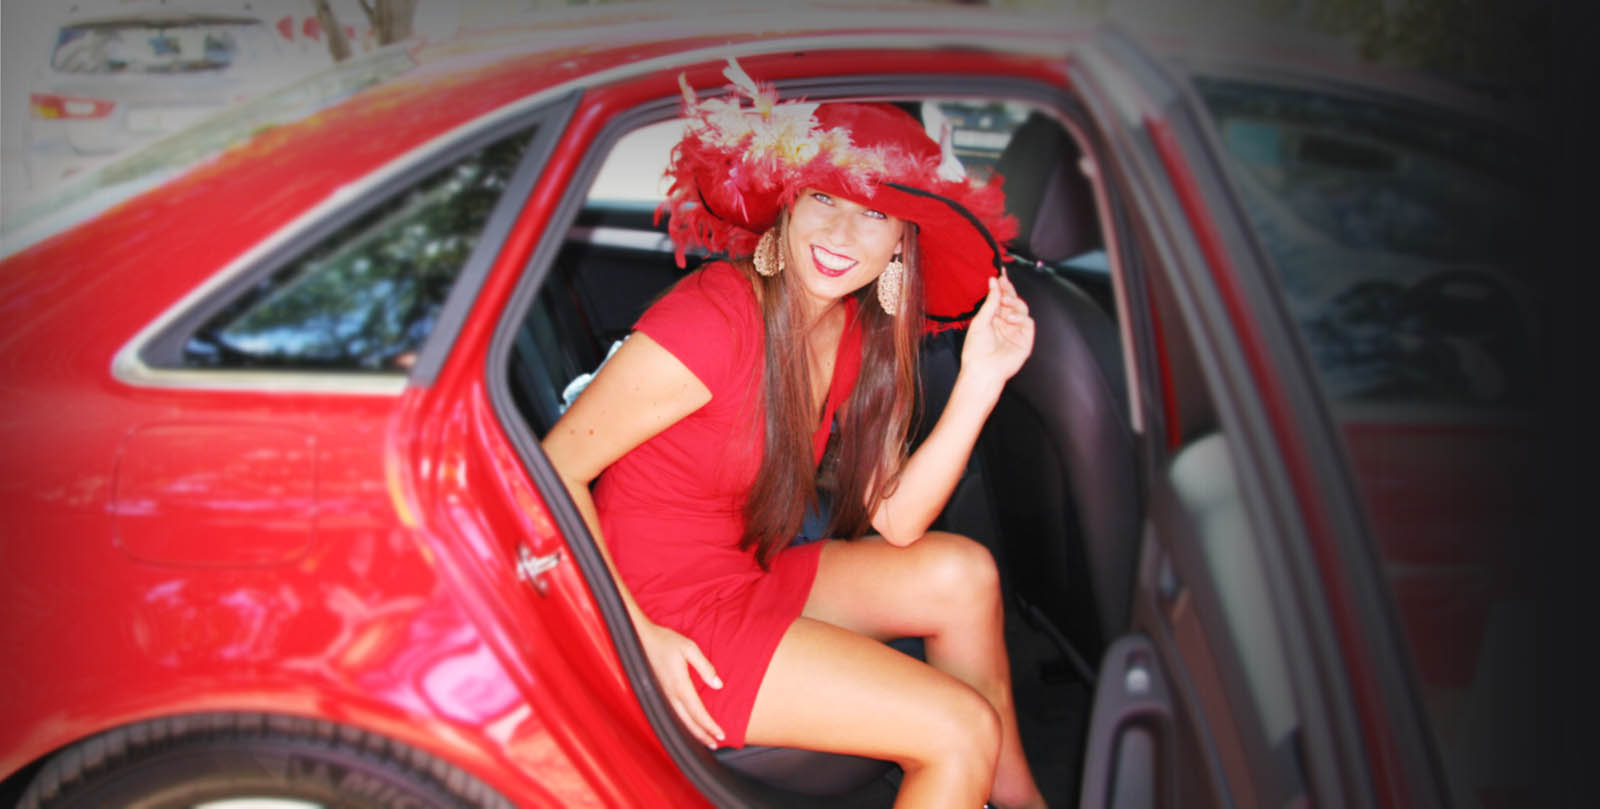 Yeh-Baby-paarl-ommiberg-ladyinred